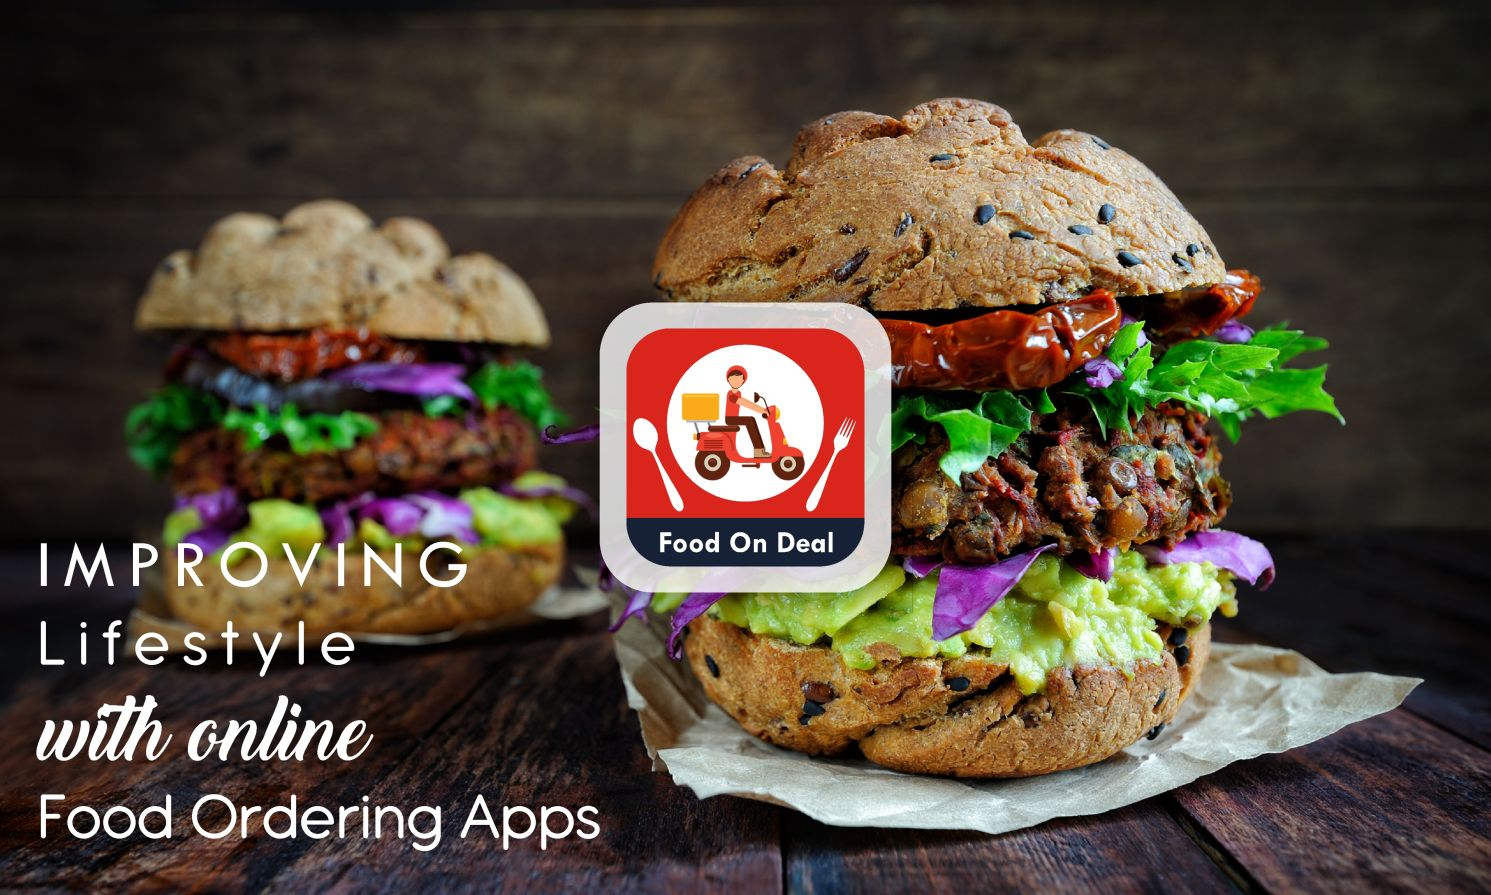 Improving Lifestyle With Online Food Ordering Apps